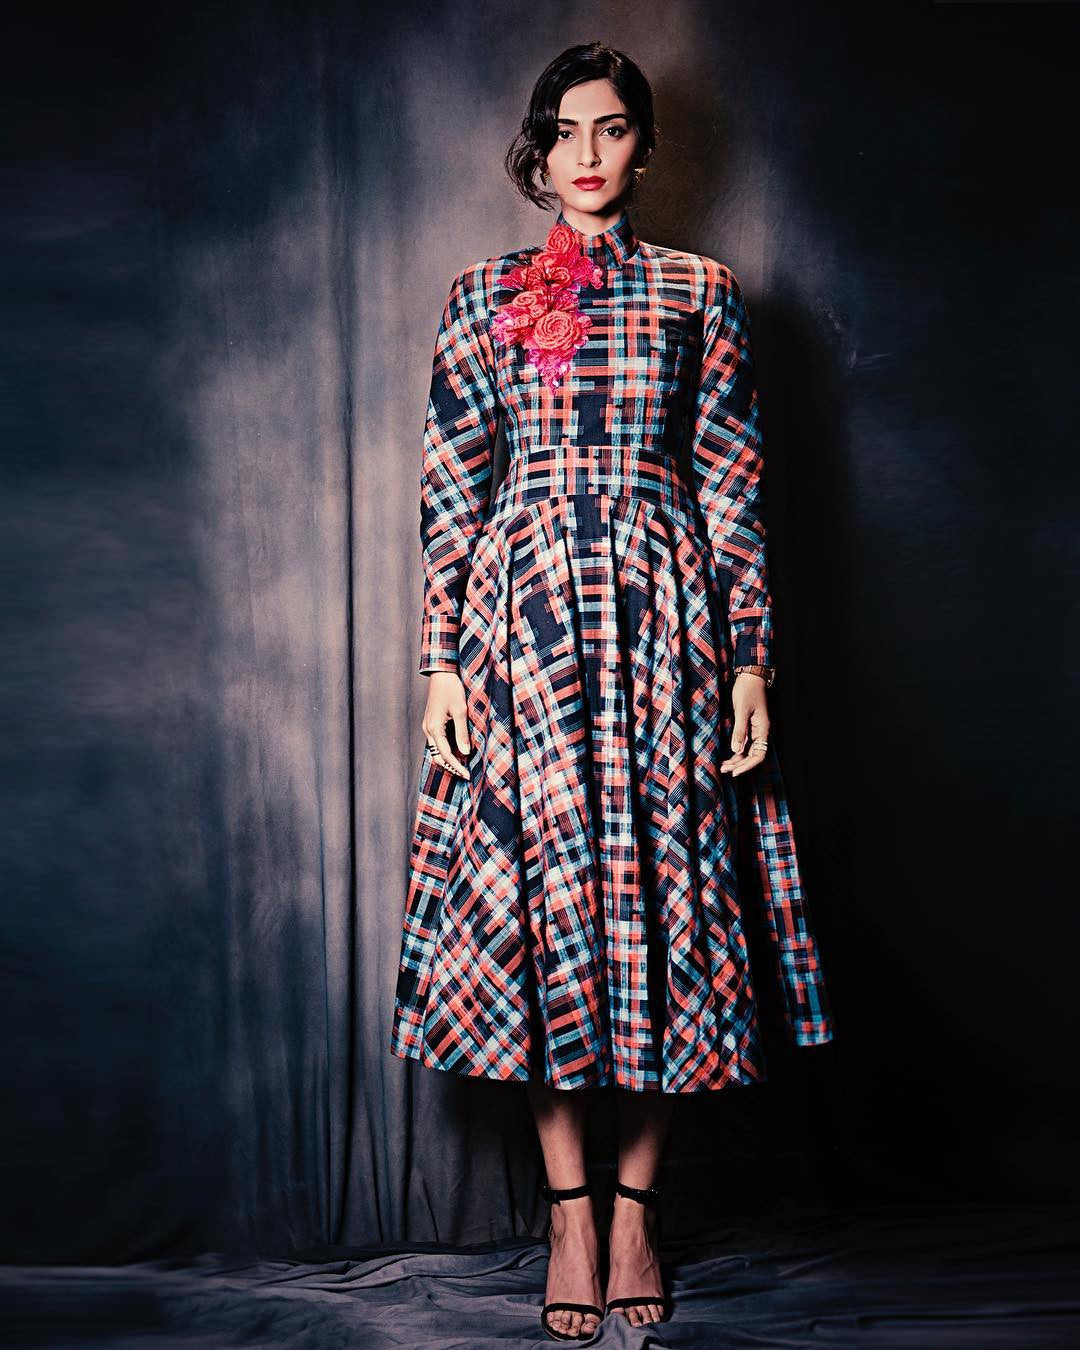 Sonam Kapoor picked out a beautiful red, blue and black checked midi from Delpozo's Pre-Fall 2017